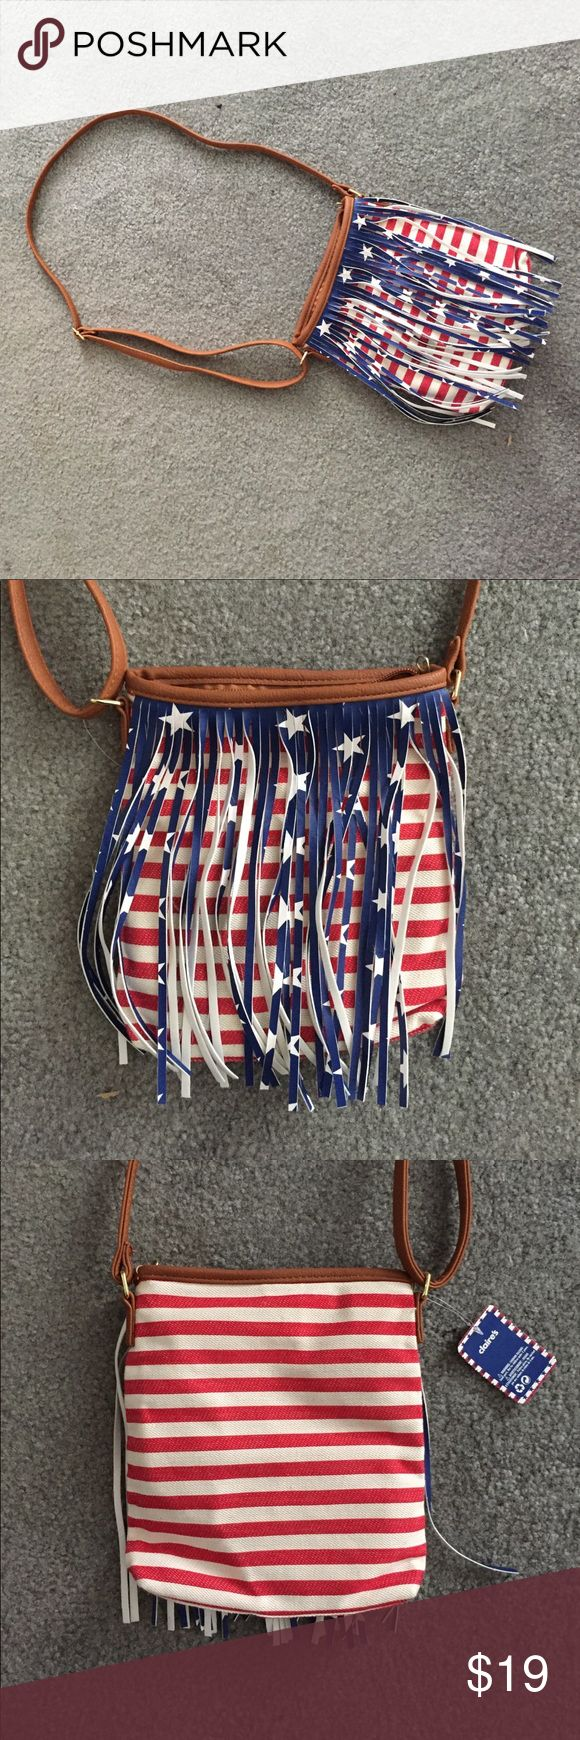 🇺🇸 American Flag crossover Purse 🇺🇸 BRAND NEW Brand new. Tags still on. Very lightweight. Adjustable strap! Claire's Bags Crossbody Bags